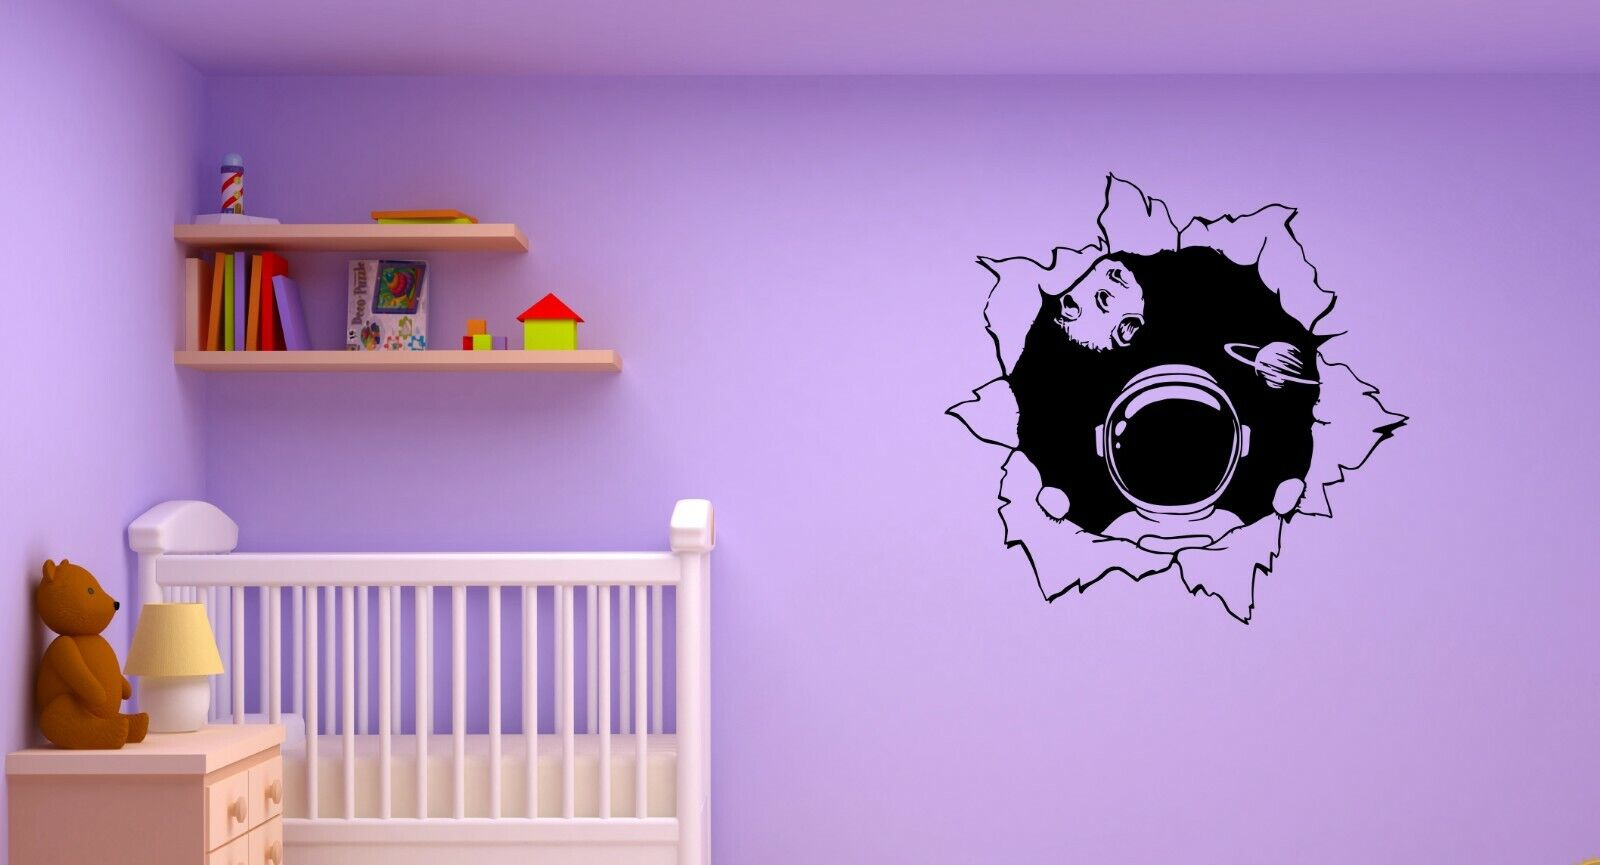 Wall Decal Space Astronaut Planets Universe Spacesuit Kids Room Sticker (ed1455)